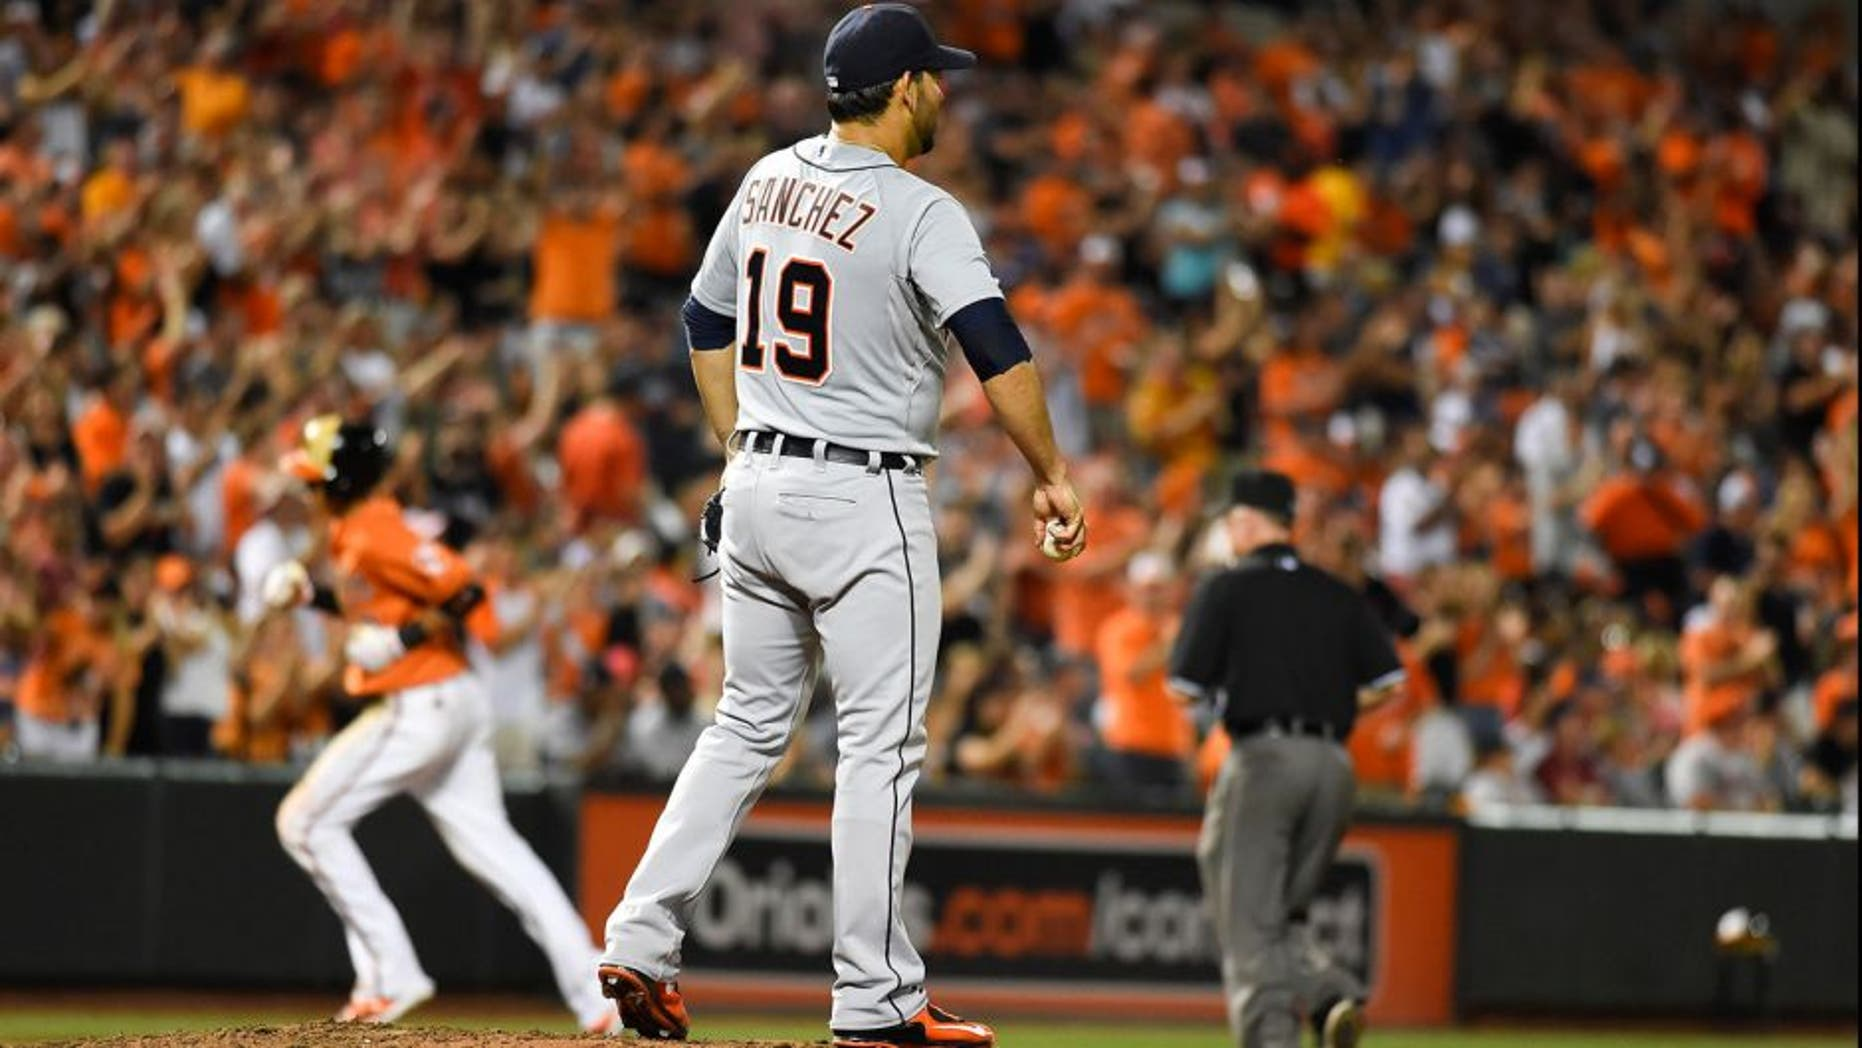 Aug 1, 2015; Baltimore, MD, USA; Detroit Tigers starting pitcher Anibal Sanchez (19) stands on the mound after giving up a two run home to Baltimore Orioles third baseman Manny Machado (13) during the seventh inning at Oriole Park at Camden Yards. Baltimore Orioles defeats Detroit Tigers 6-2. Mandatory Credit: Tommy Gilligan-USA TODAY Sports